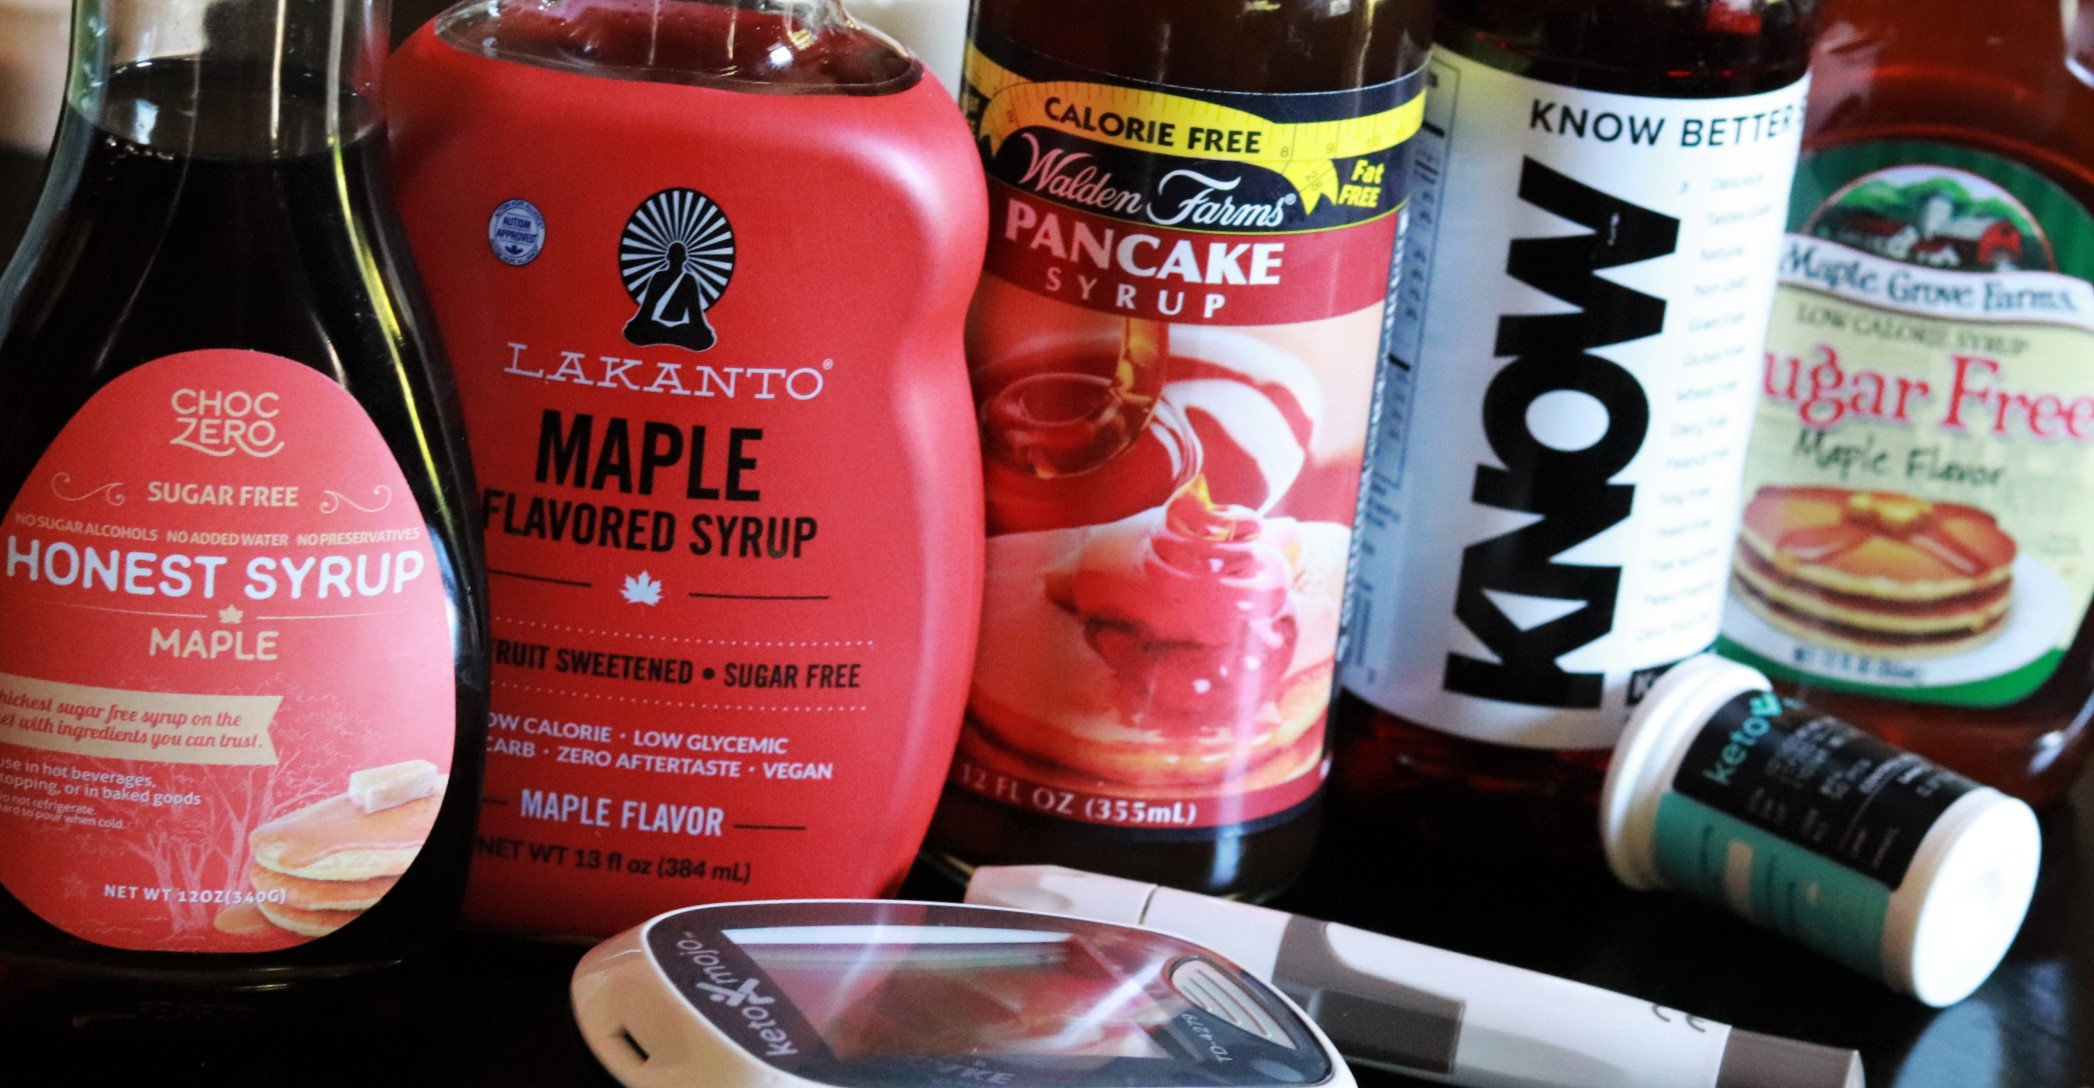 Is Sugar Free Syrup Keto Friendly? - TryKetoWith Me